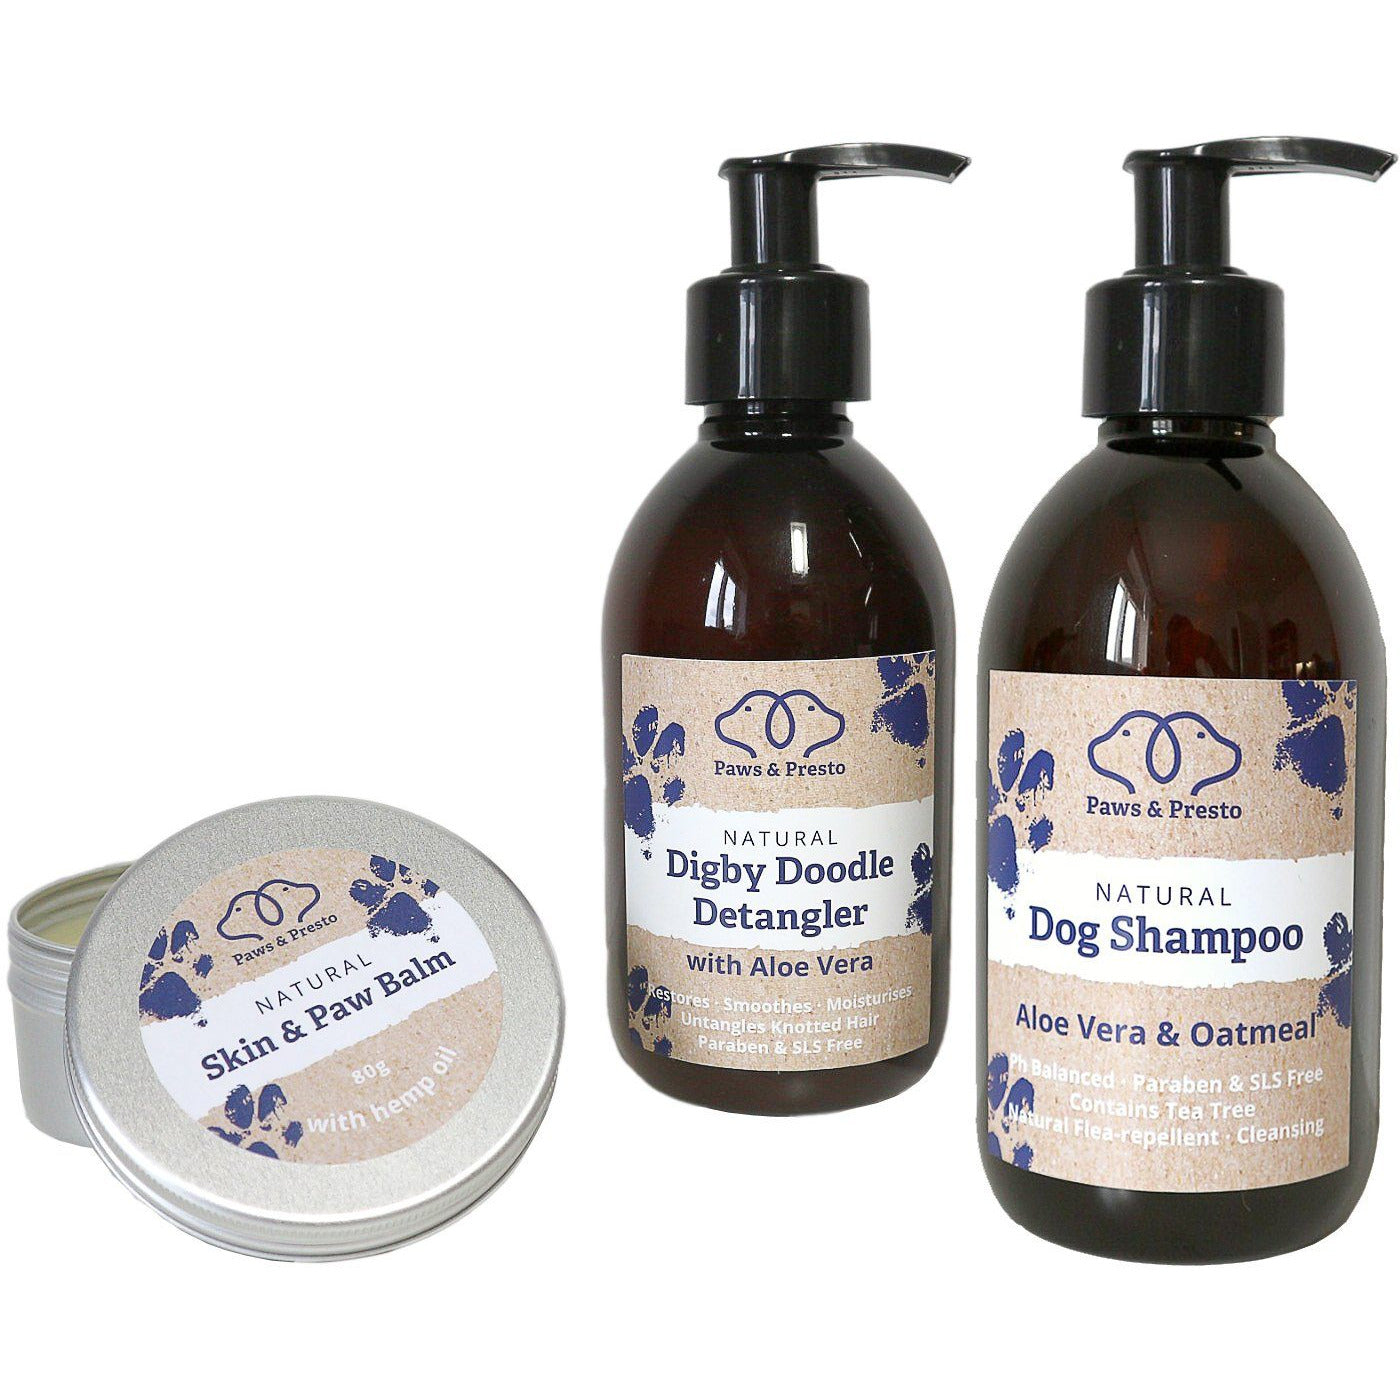 Natural Dog Shampoo For Sensitive Itchy Skin  Paws & Presto 190 Ml